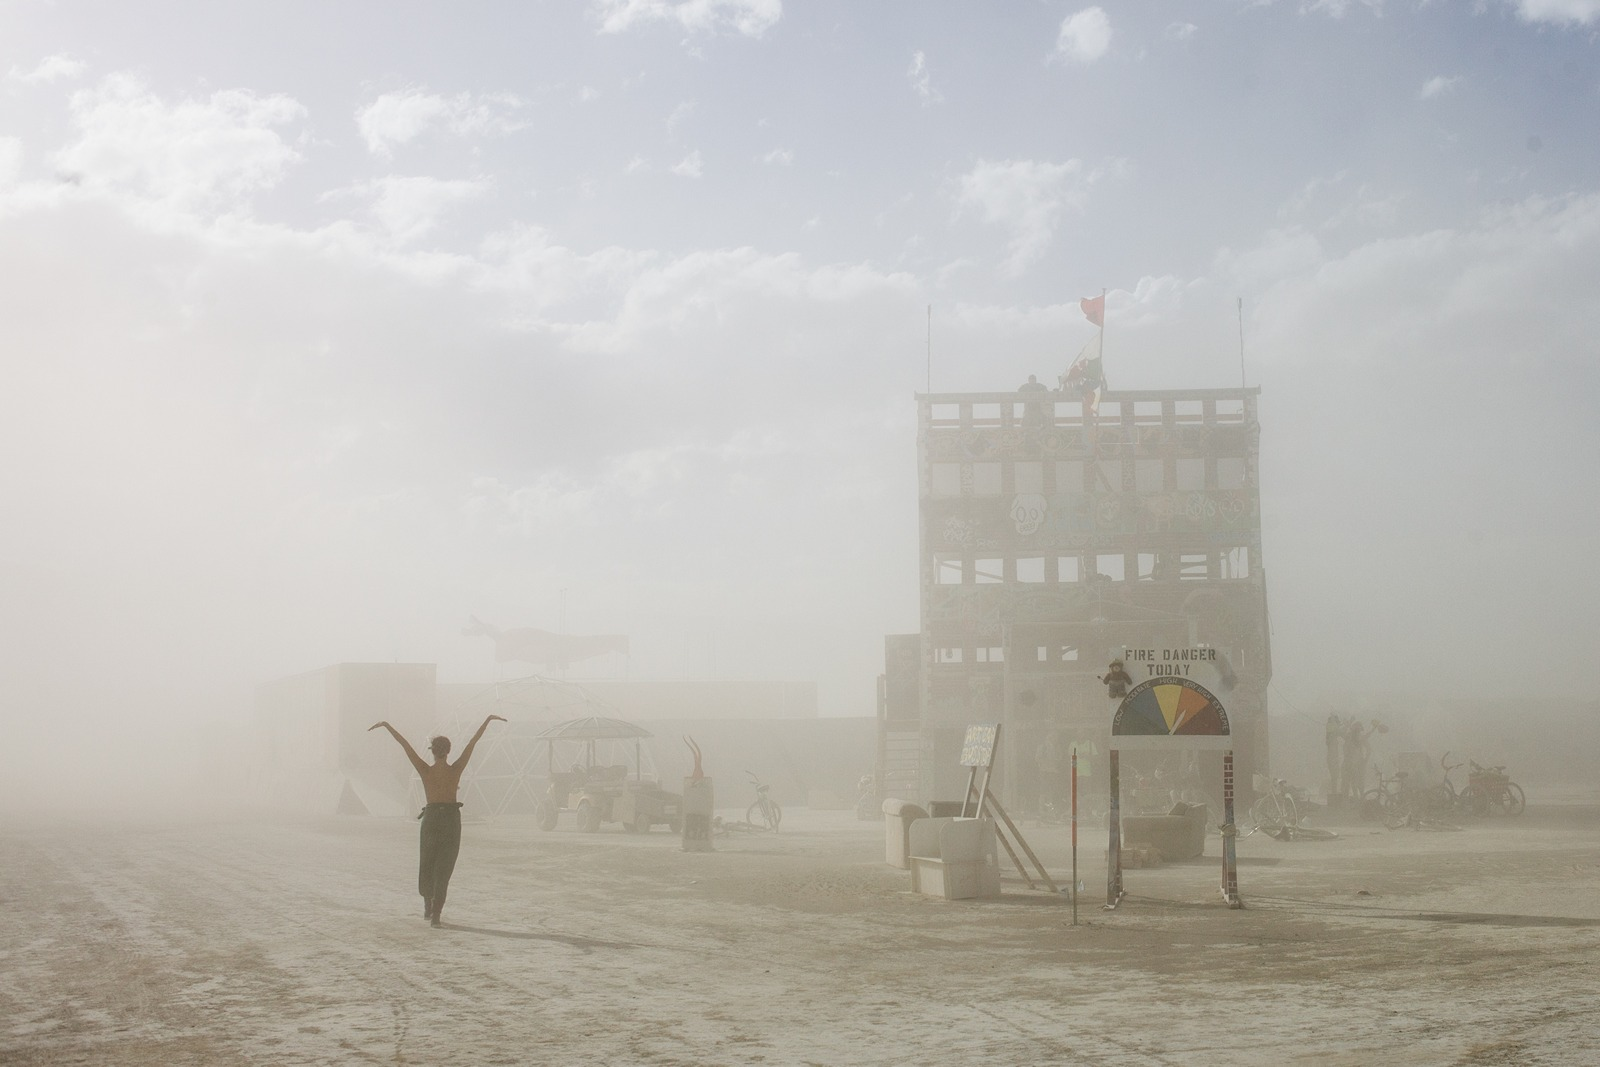 Burning Man - The girl and the firehouse during the sandstorm